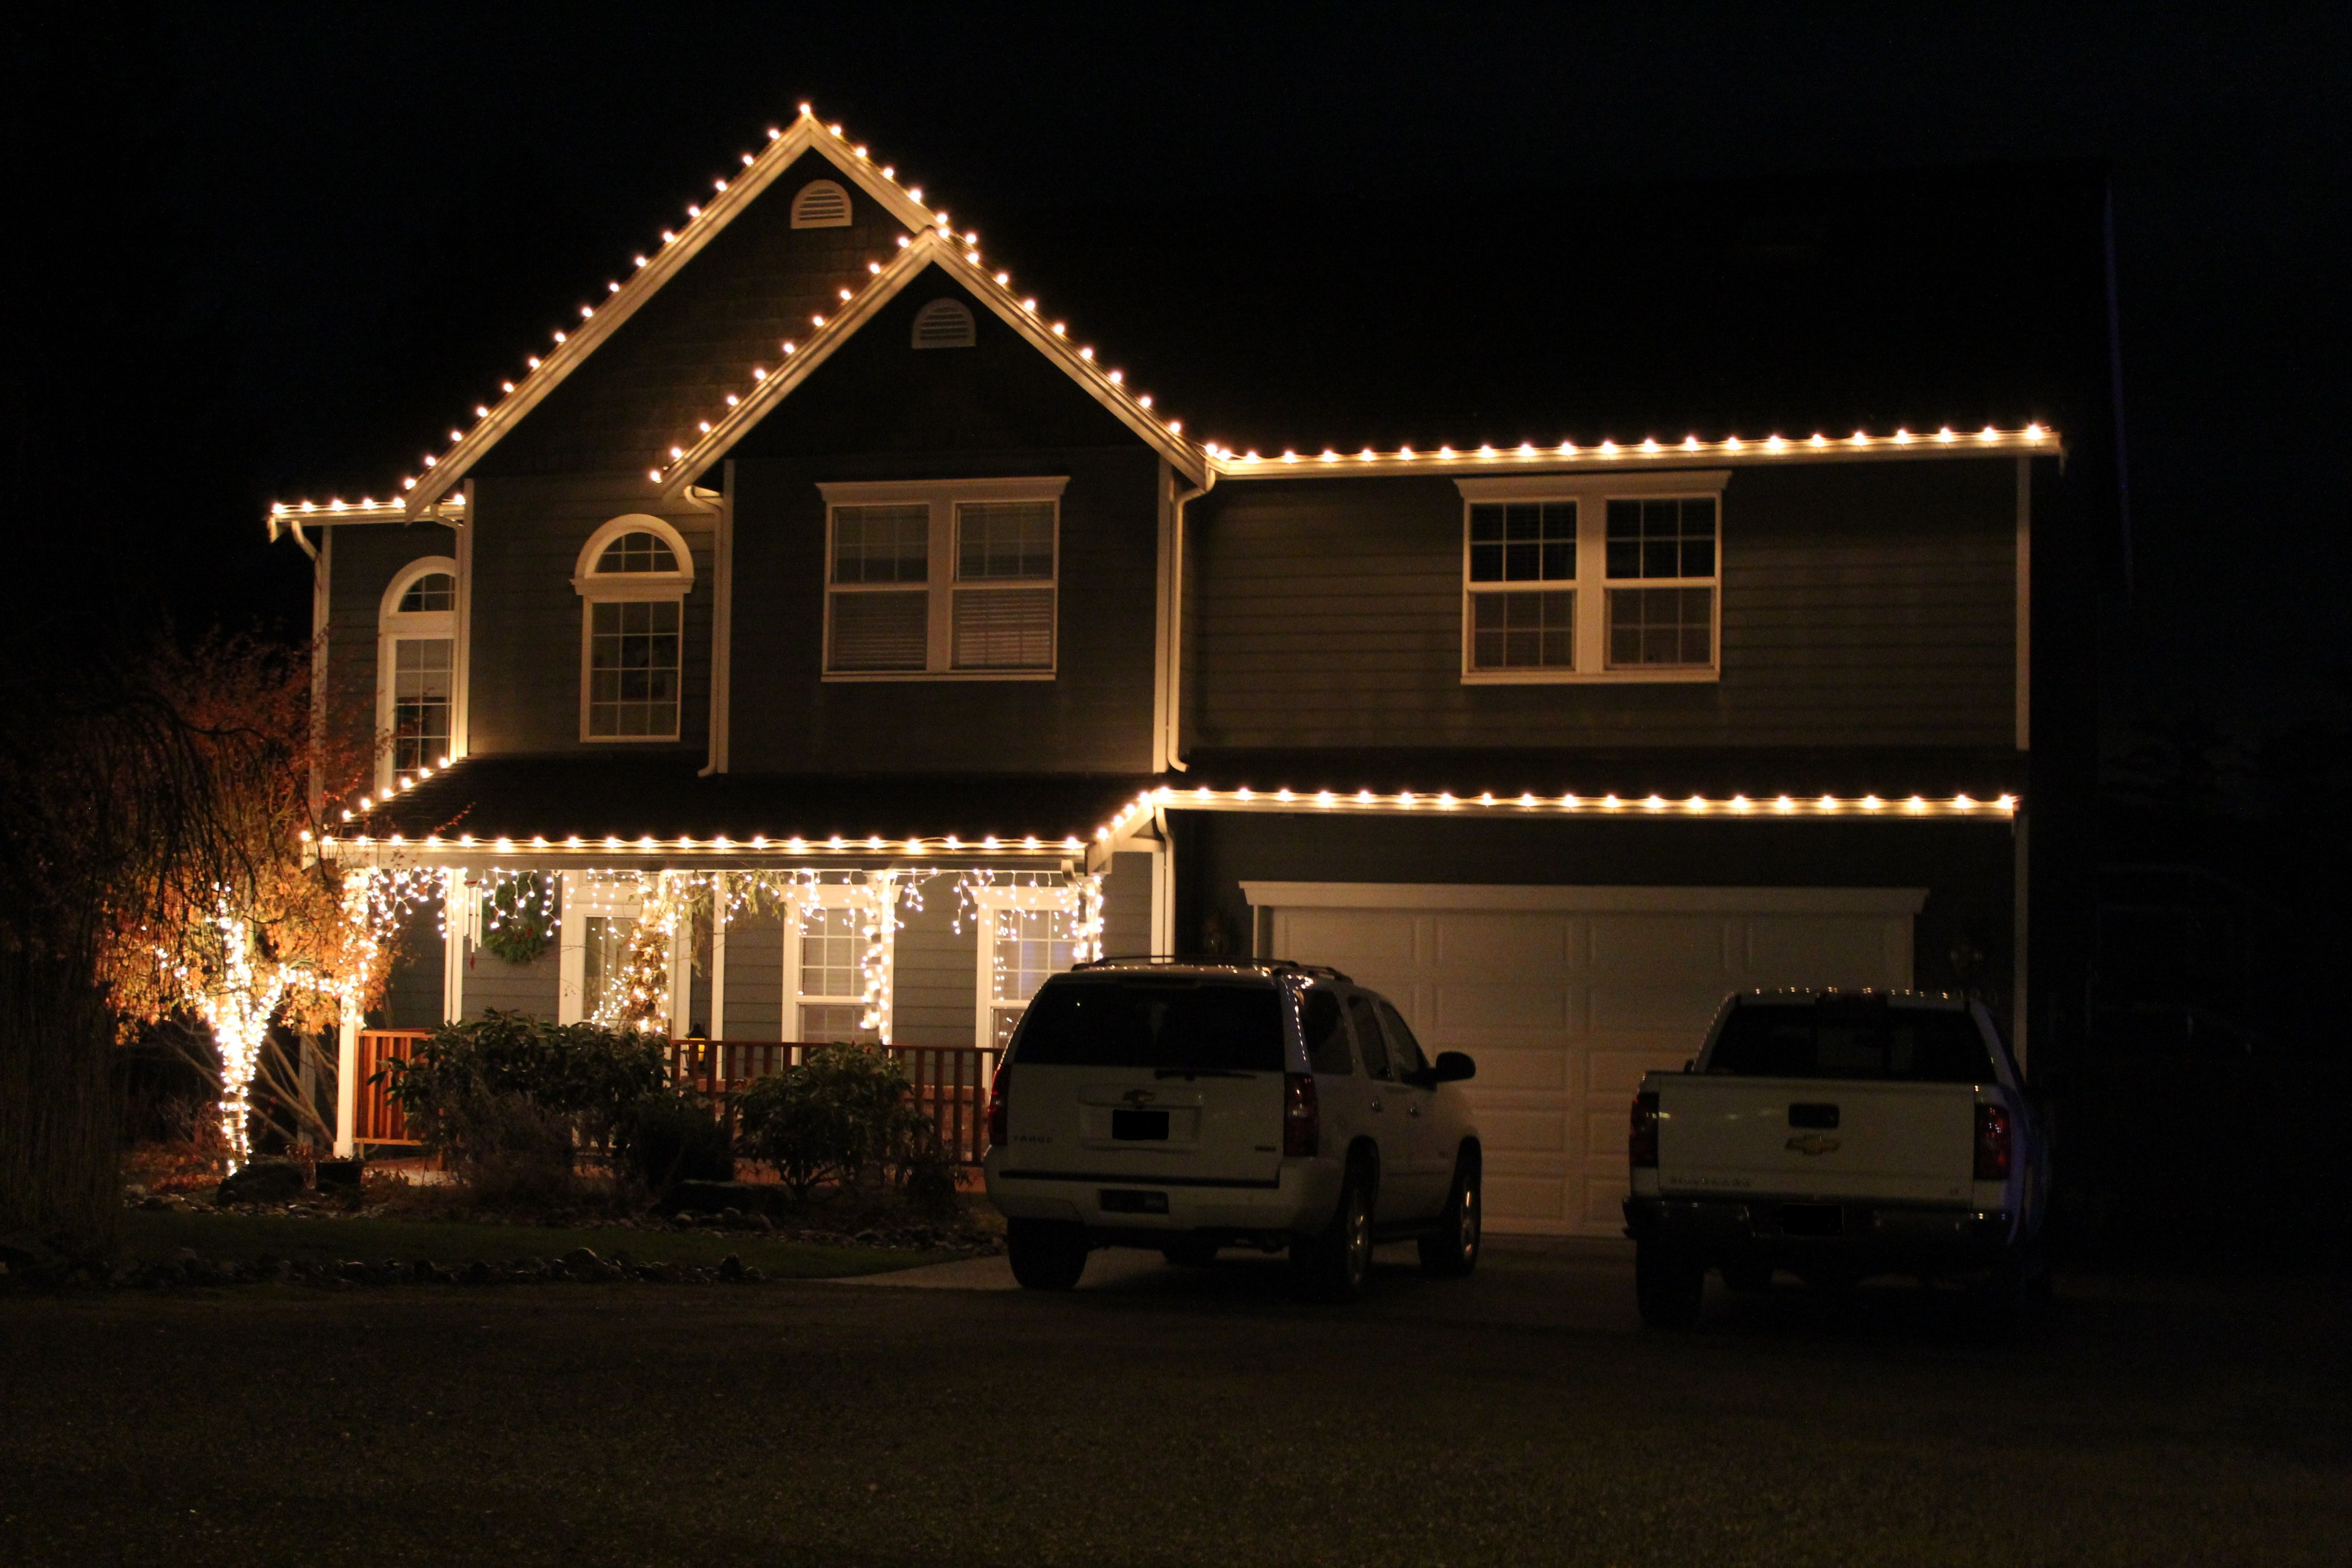 Roofline Lighting Decorating With Christmas Lights Christmas Light Displays Christmas Lights